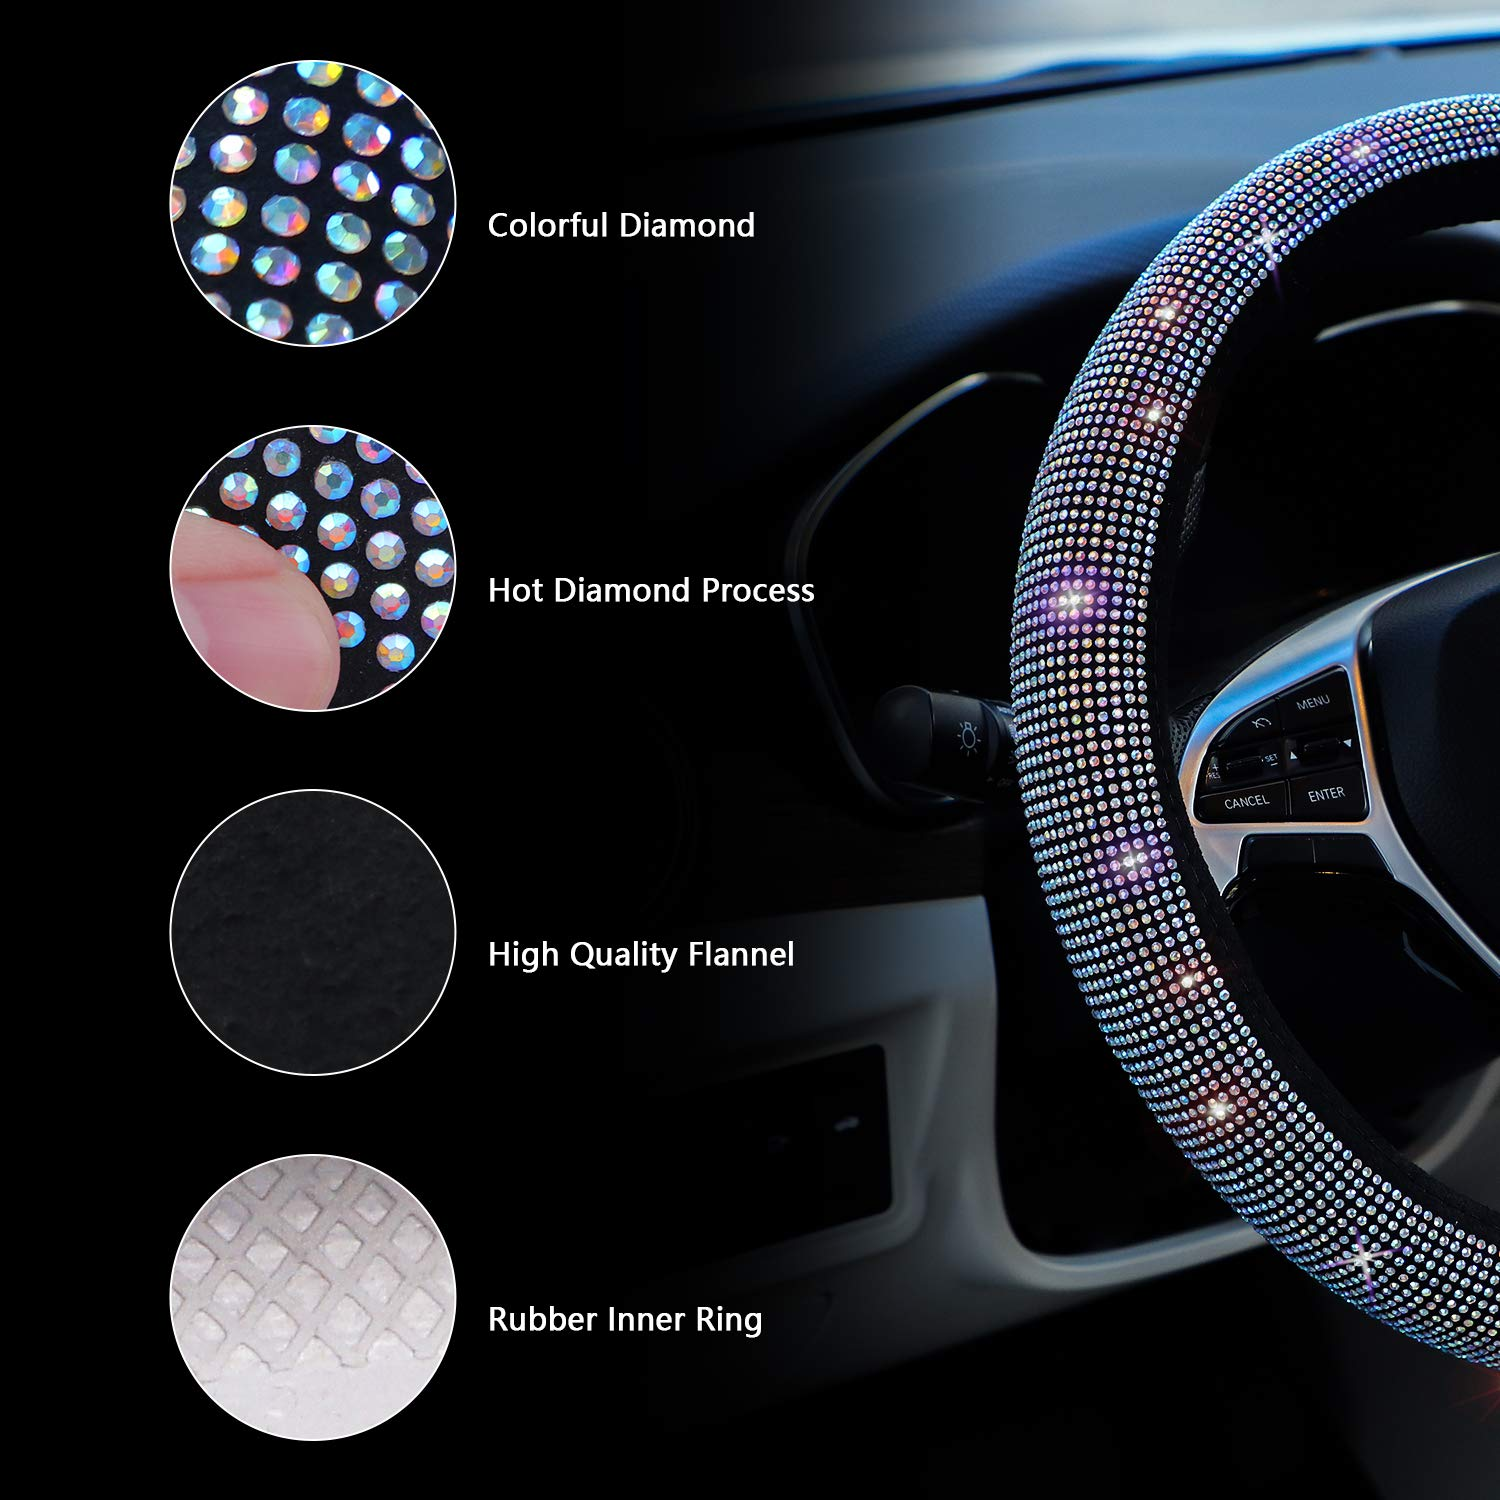 Small Size 14 inches-14 1//4 inches Colorful Bling Anti-Slip Wheel Protector Car Sparkly Steering Wheel Cover for Women Girls Black for Prius Civic Model 3 Camaro Spark Rogue Mini Smart Audi